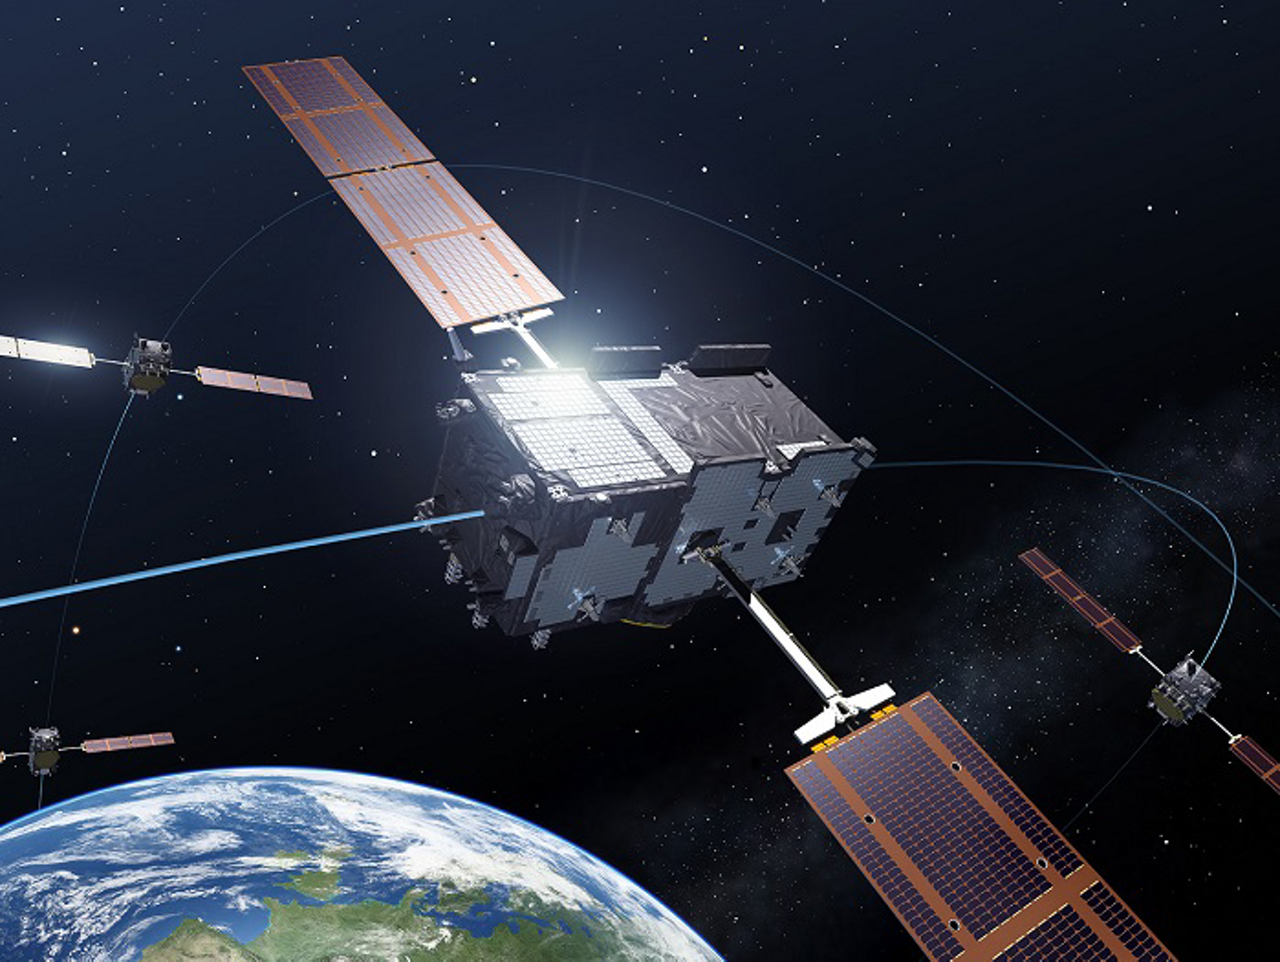 A representative graphic for Europe's Galileo satellite constellation, for which Airbus Defence and Space has offered major system expertise.